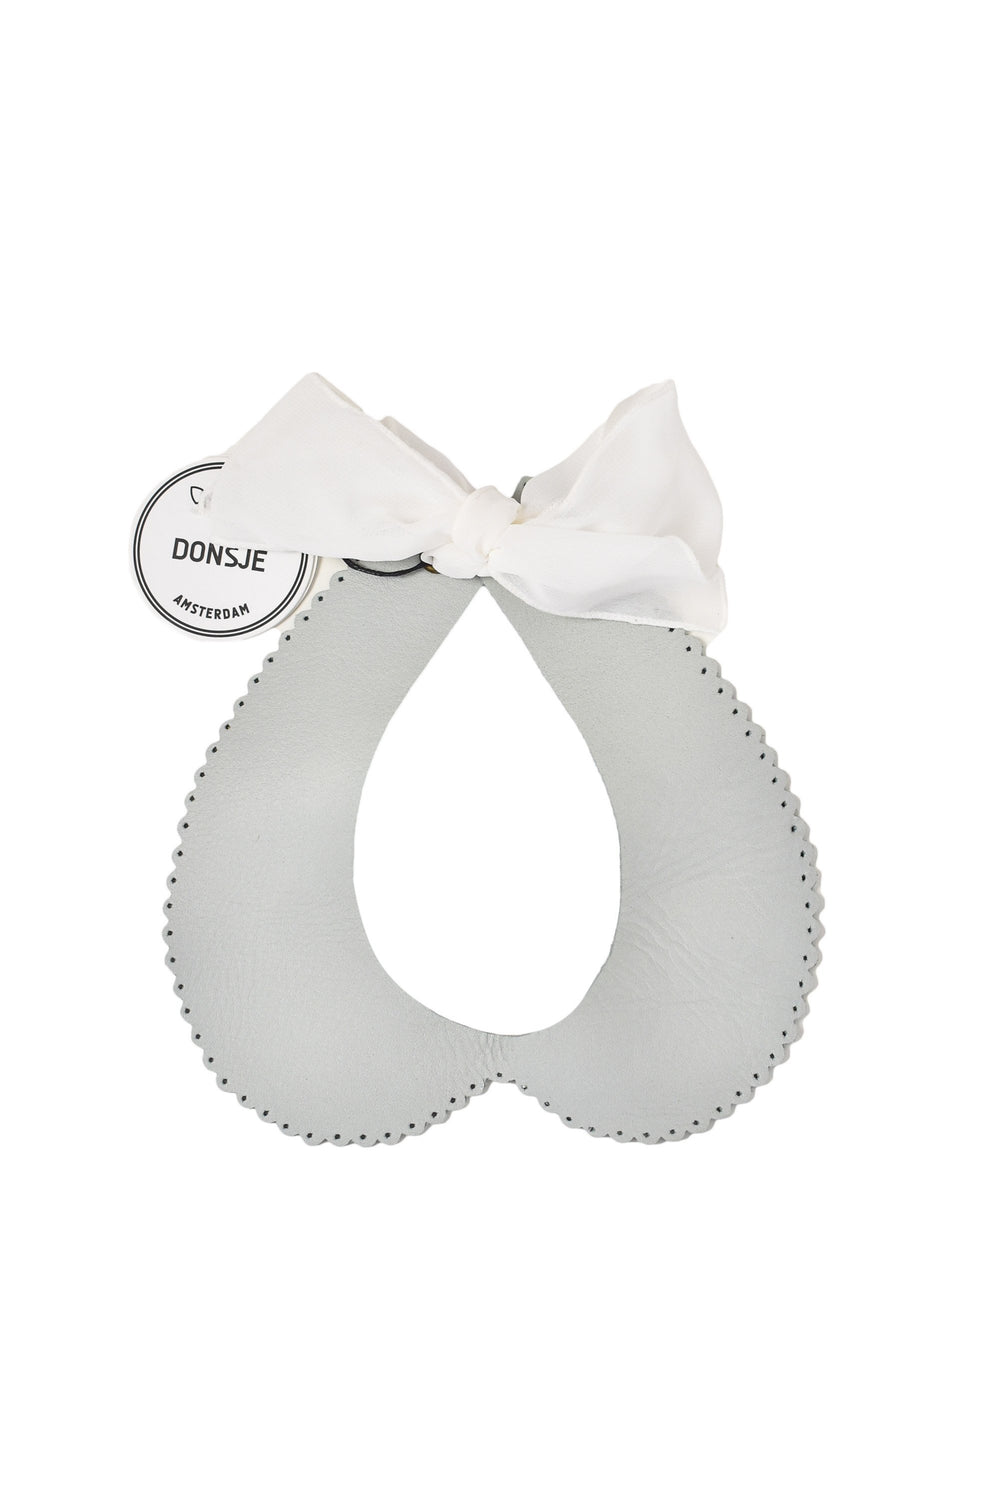 Donsje - Organza Collar in Light Grey Leather